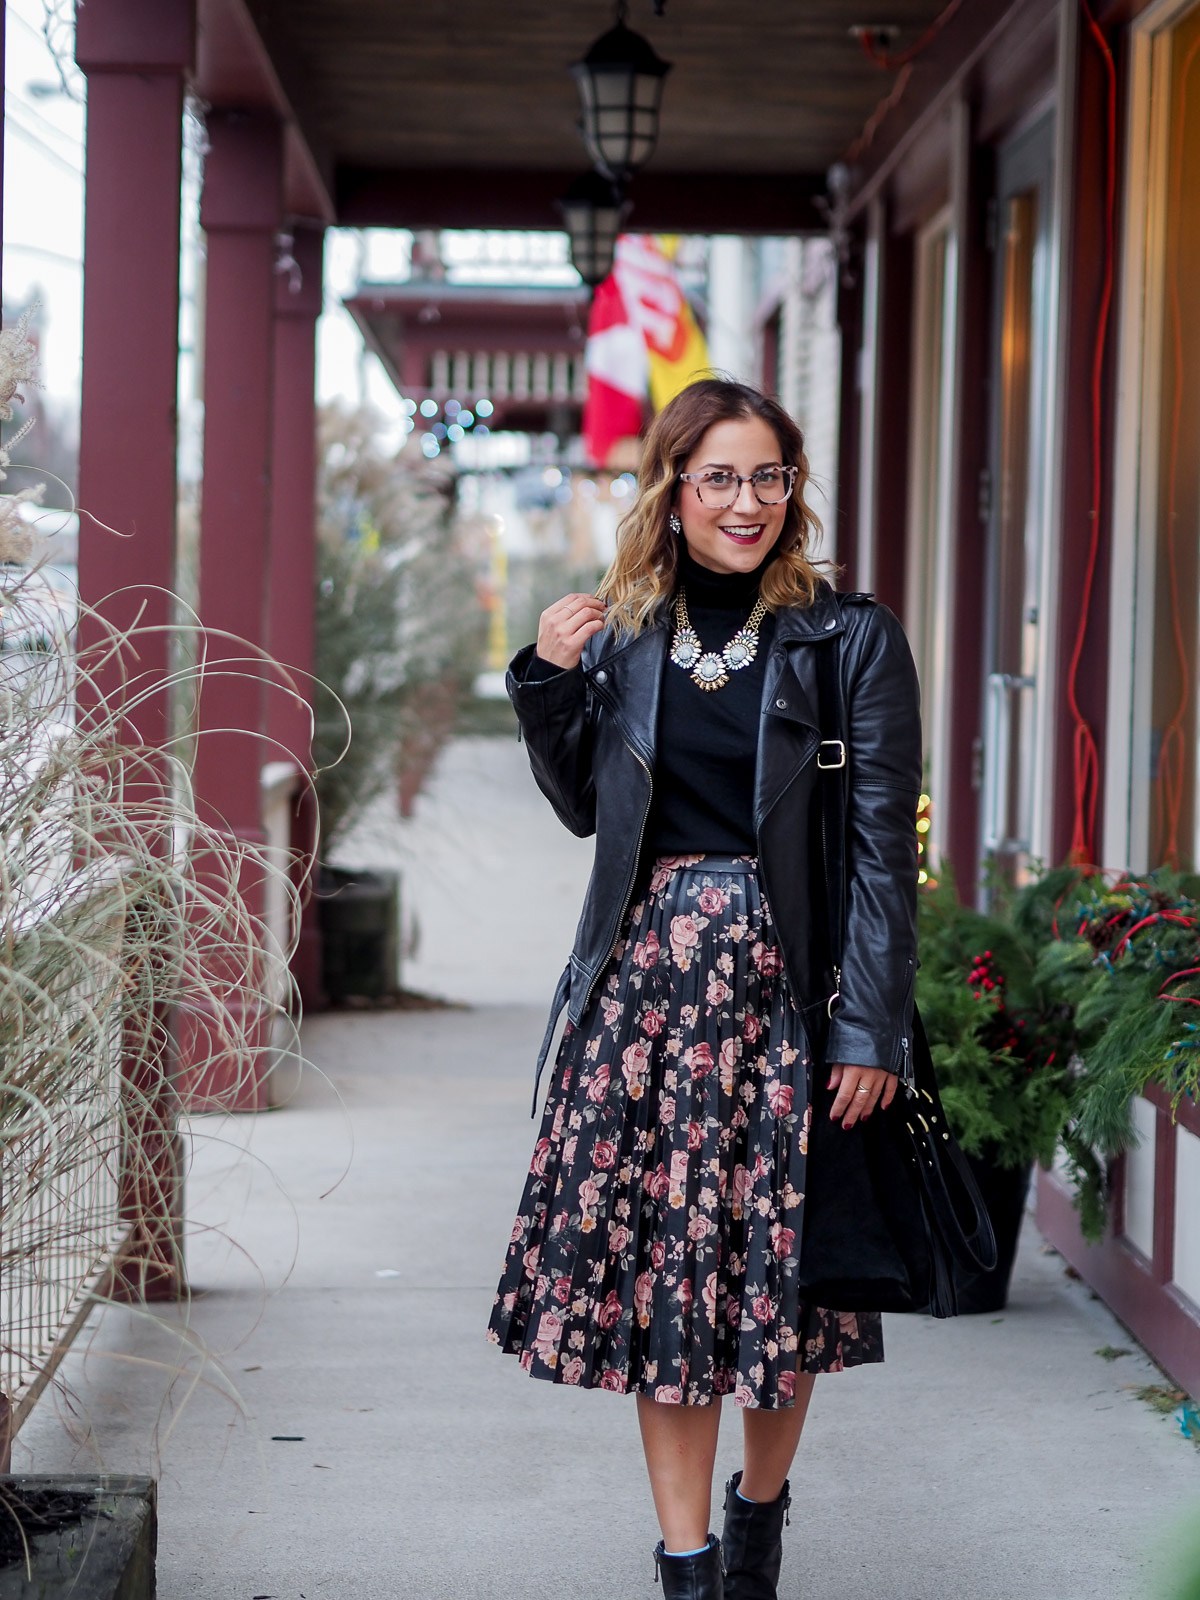 How to style eyeglasses for the holidays - a simple holiday outfit, featuring a BB Dakota floral skirt and blush tortoise glasses from Clearly